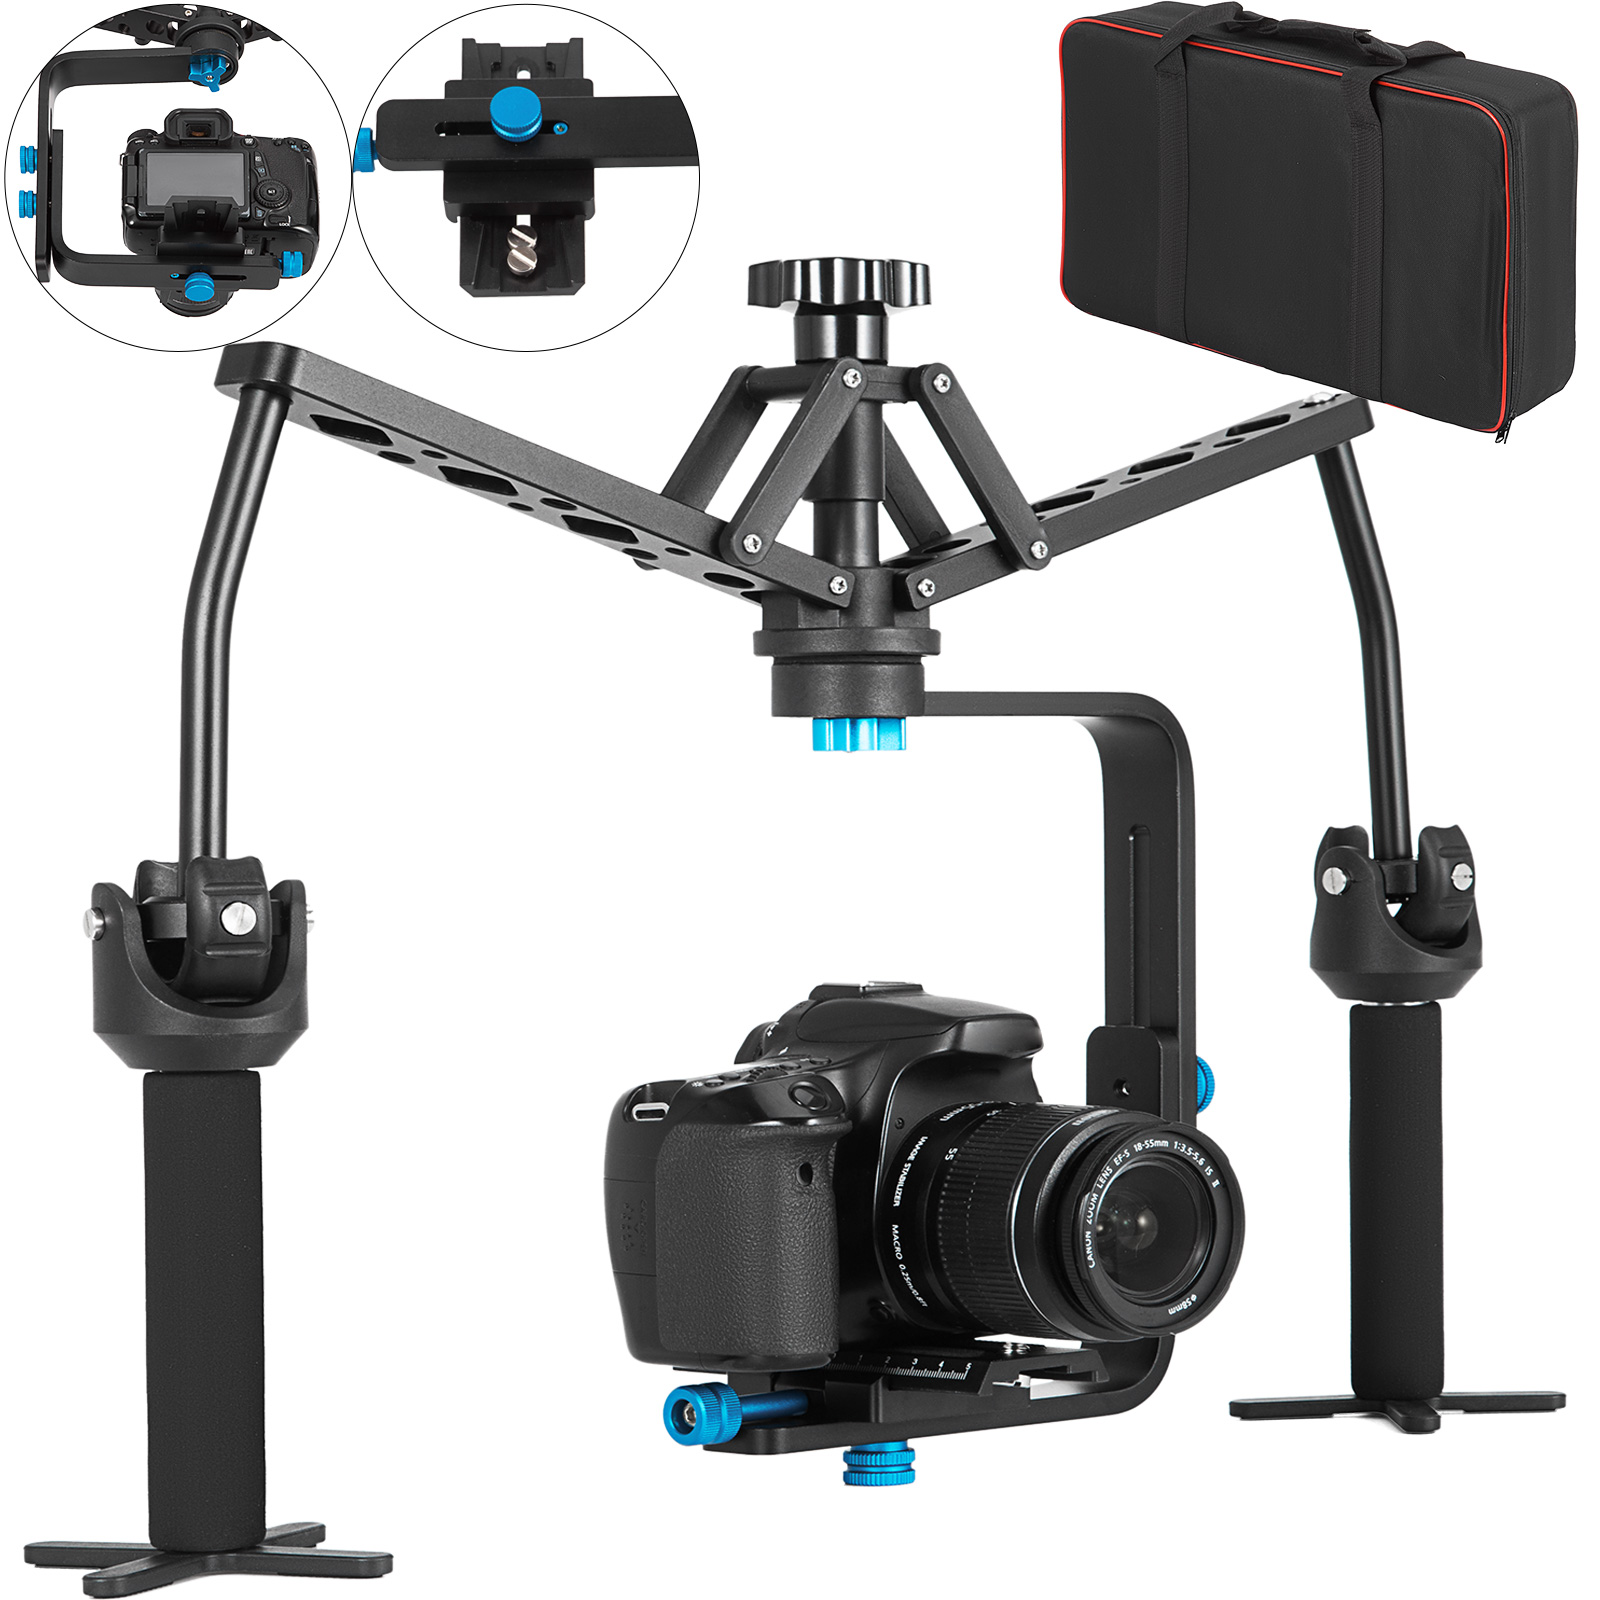 Universal Handheld Stabilizer Video Spider Substitute Steady Rig with 1//4 in and 3//8 in Screw Holes for Camera Camcorder Black Handheld Stabilizer